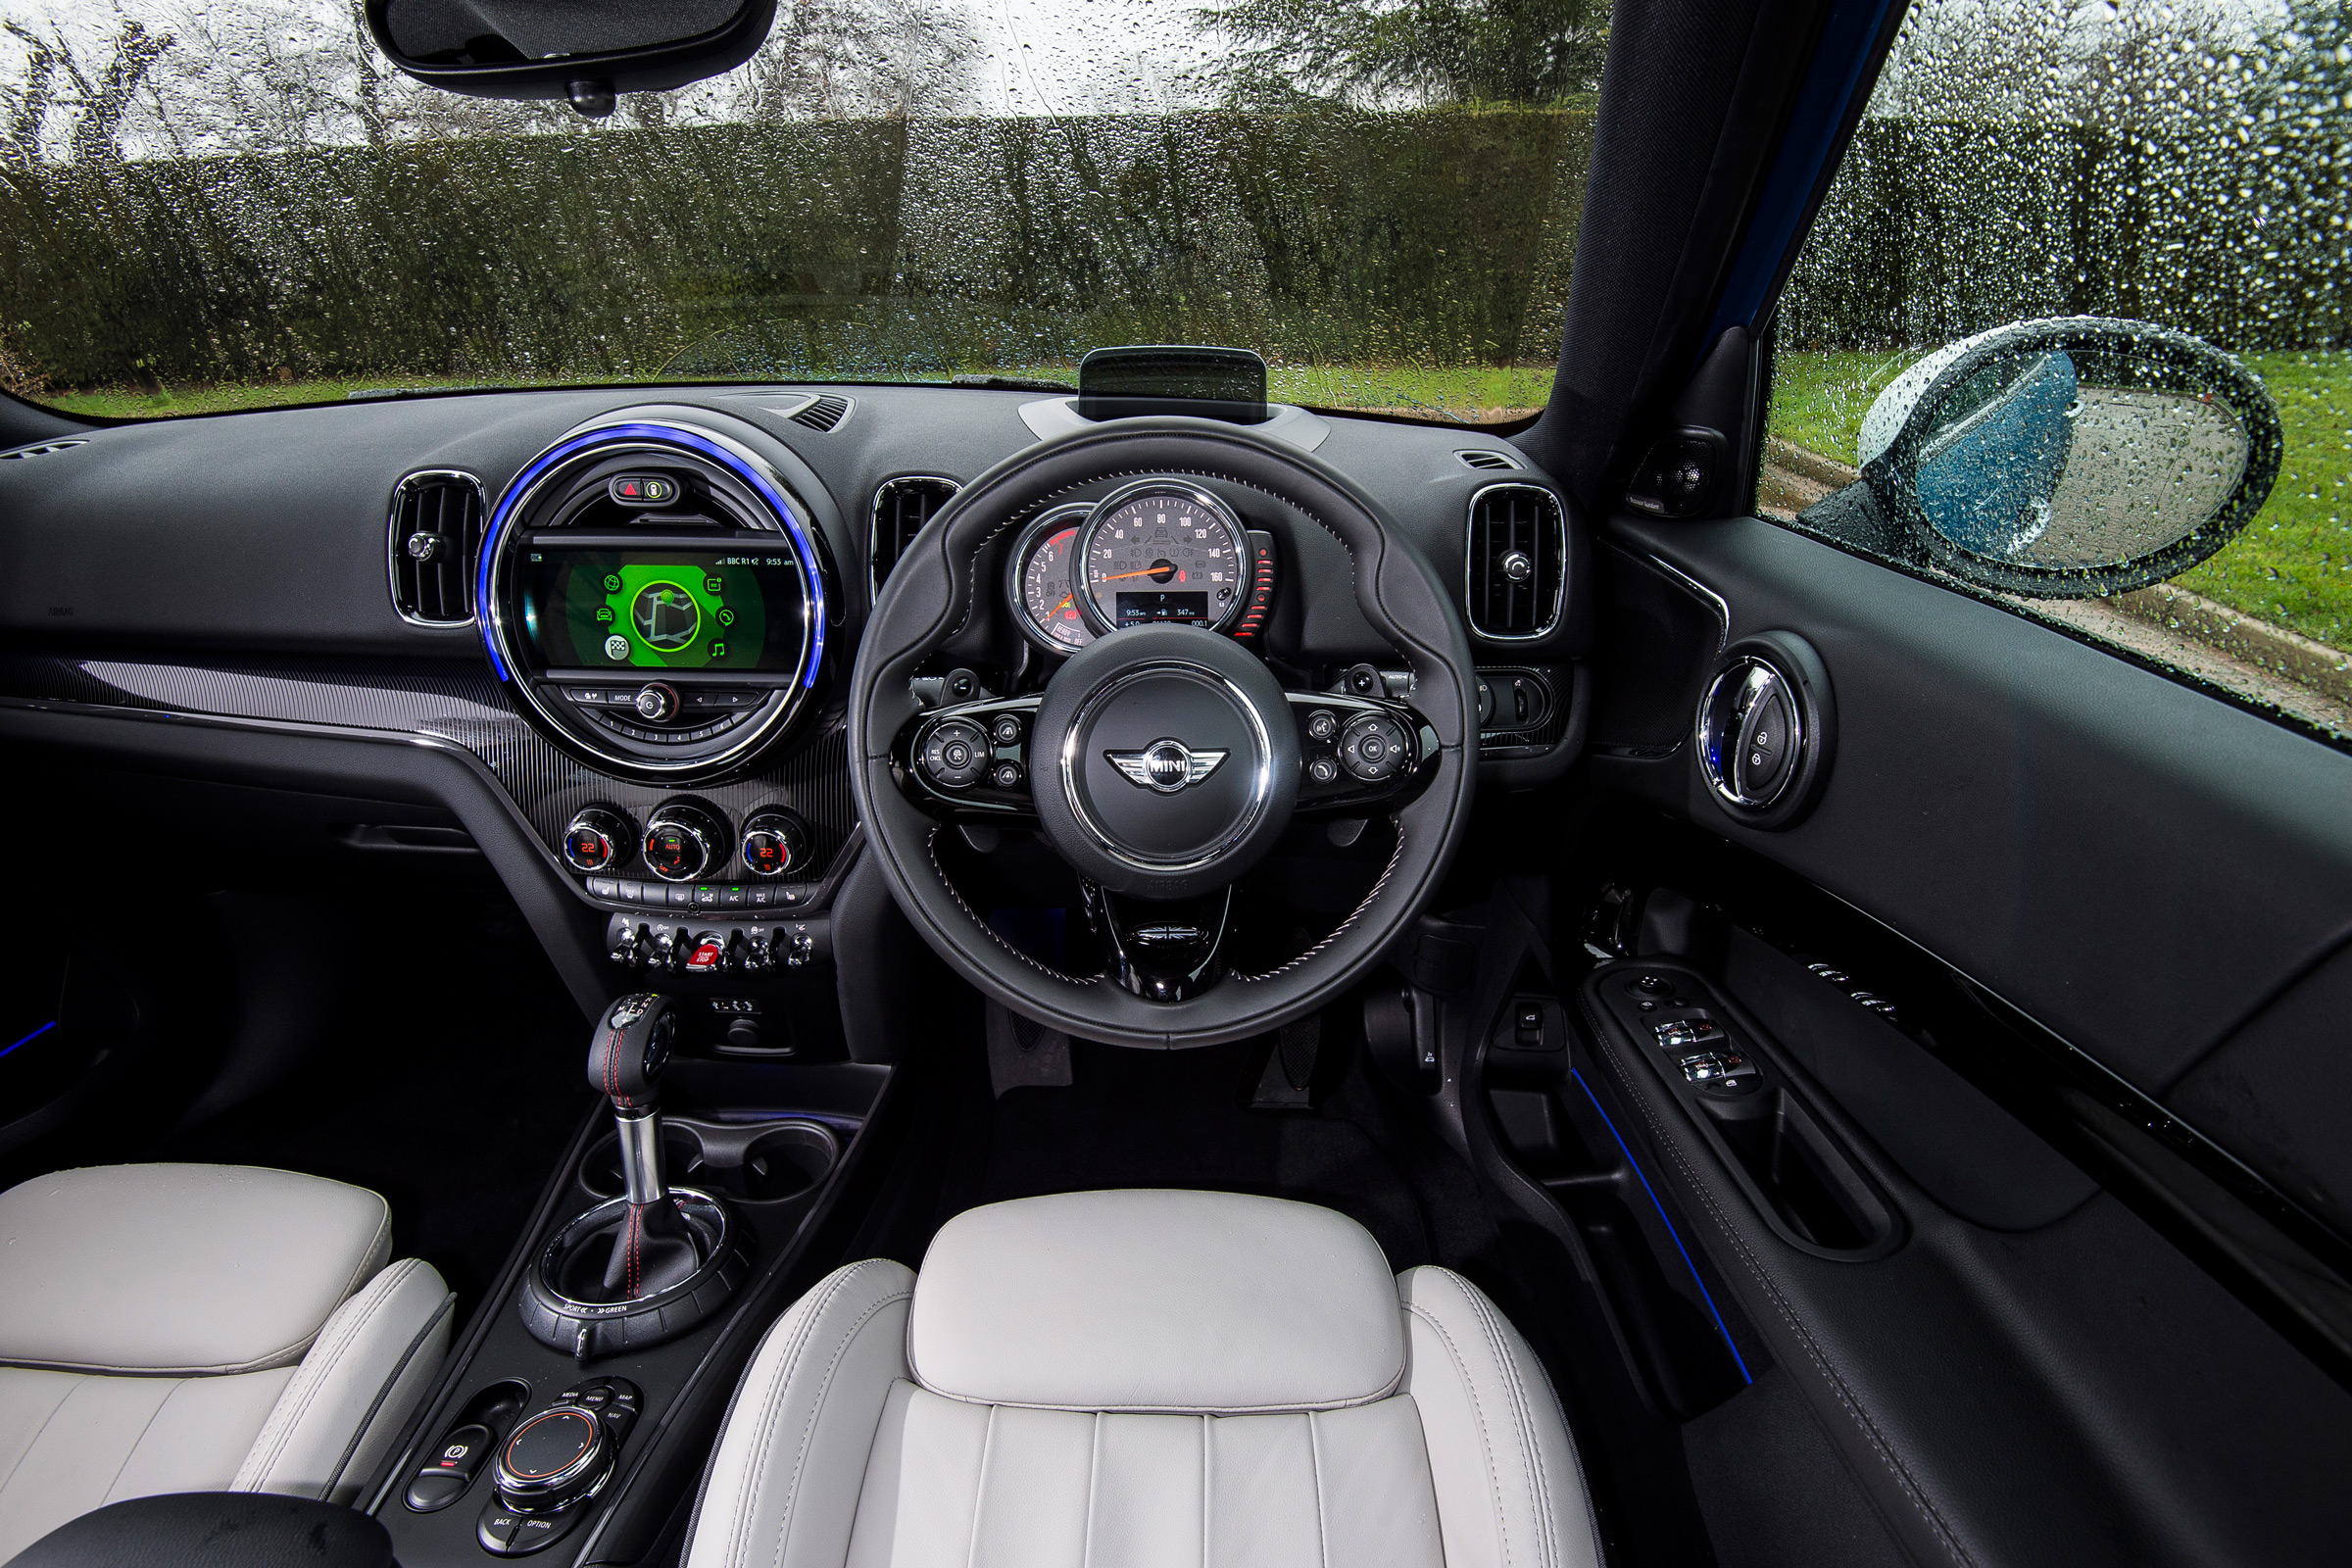 2017 MINI Countryman Interior Driver Cockpit Steering And Dash (Photo 53 of 61)